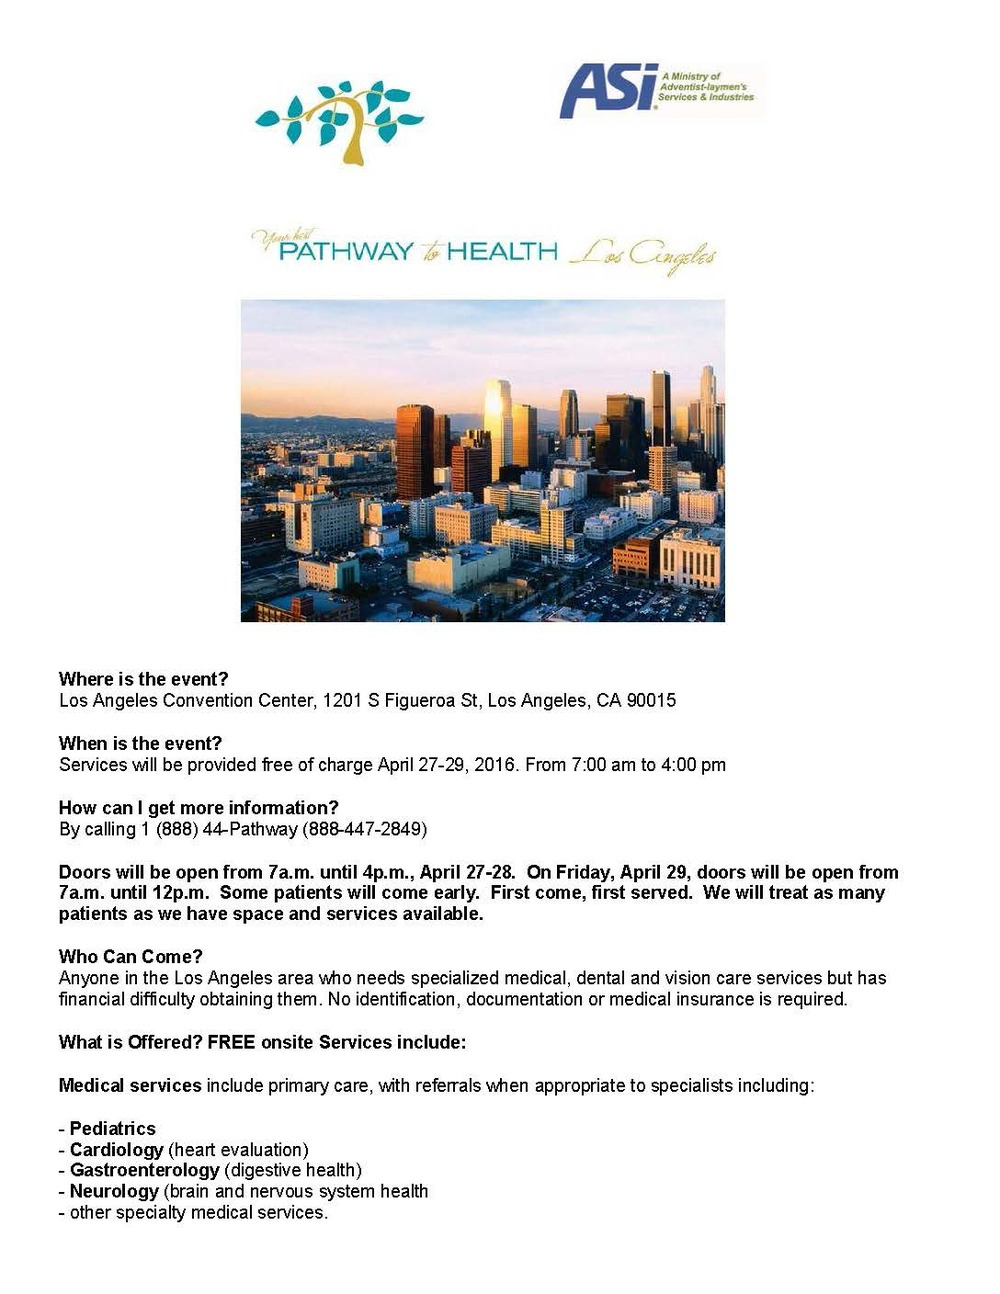 cm_events-Pathway2Health2016_Page_1.jpg